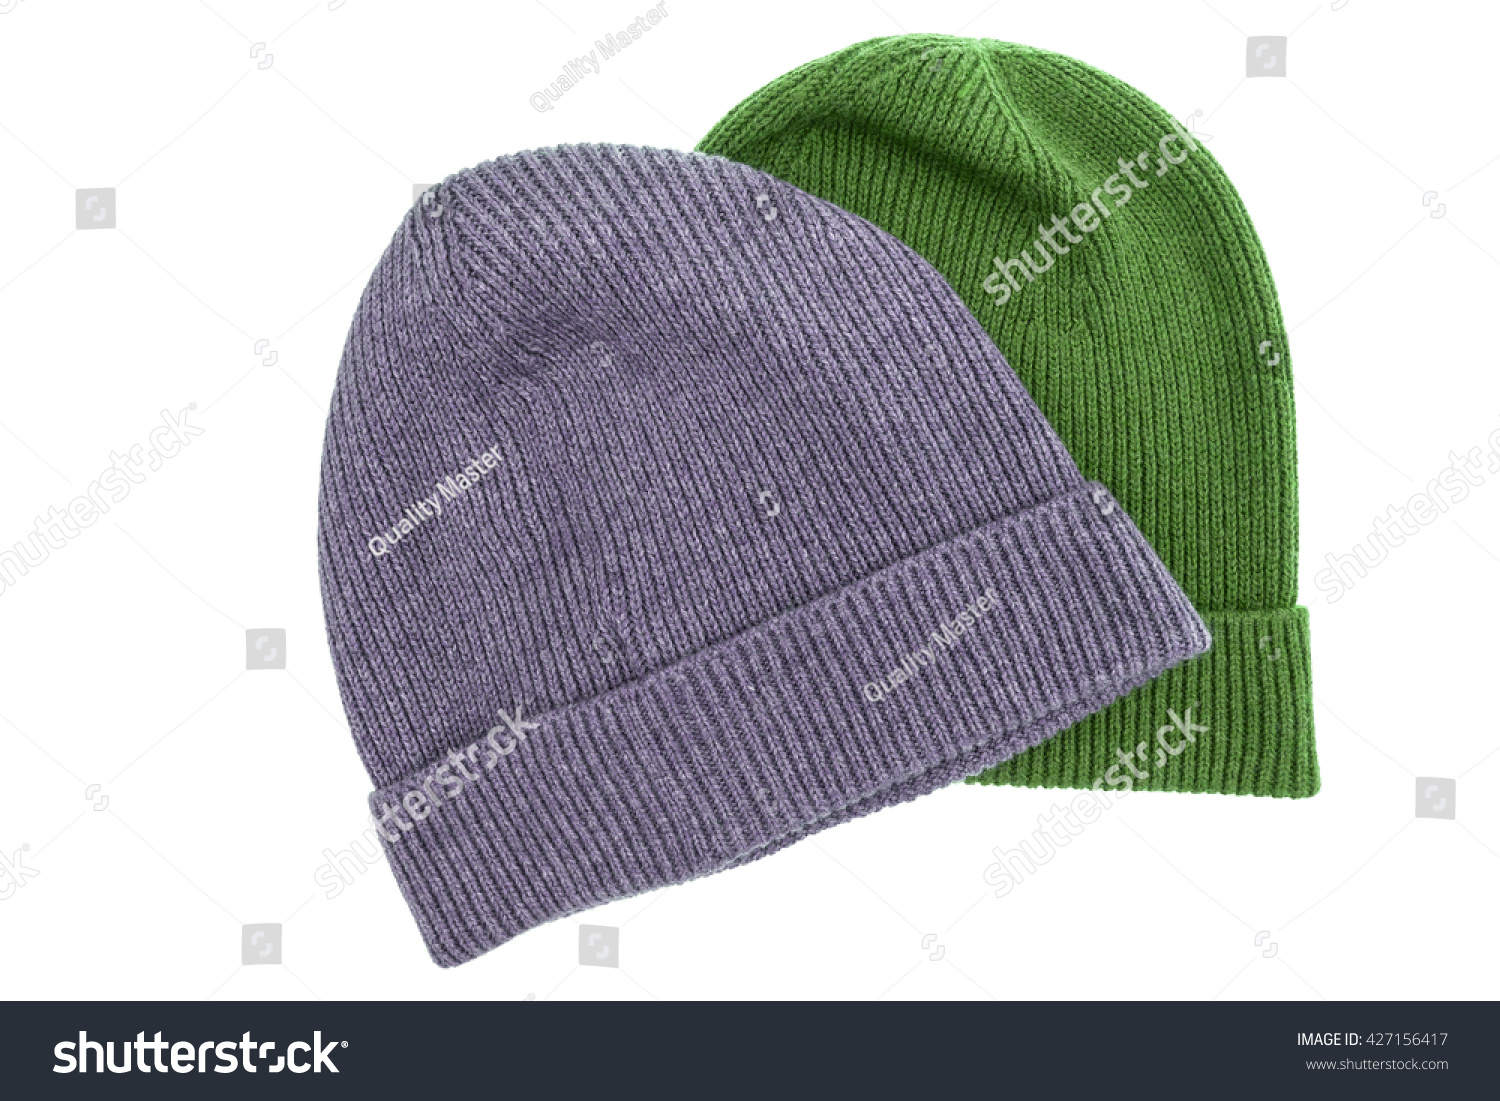 6ae021c05eb Top View Flat Lay Hipster Beanie Stock Photo (Edit Now) 427156417 ...